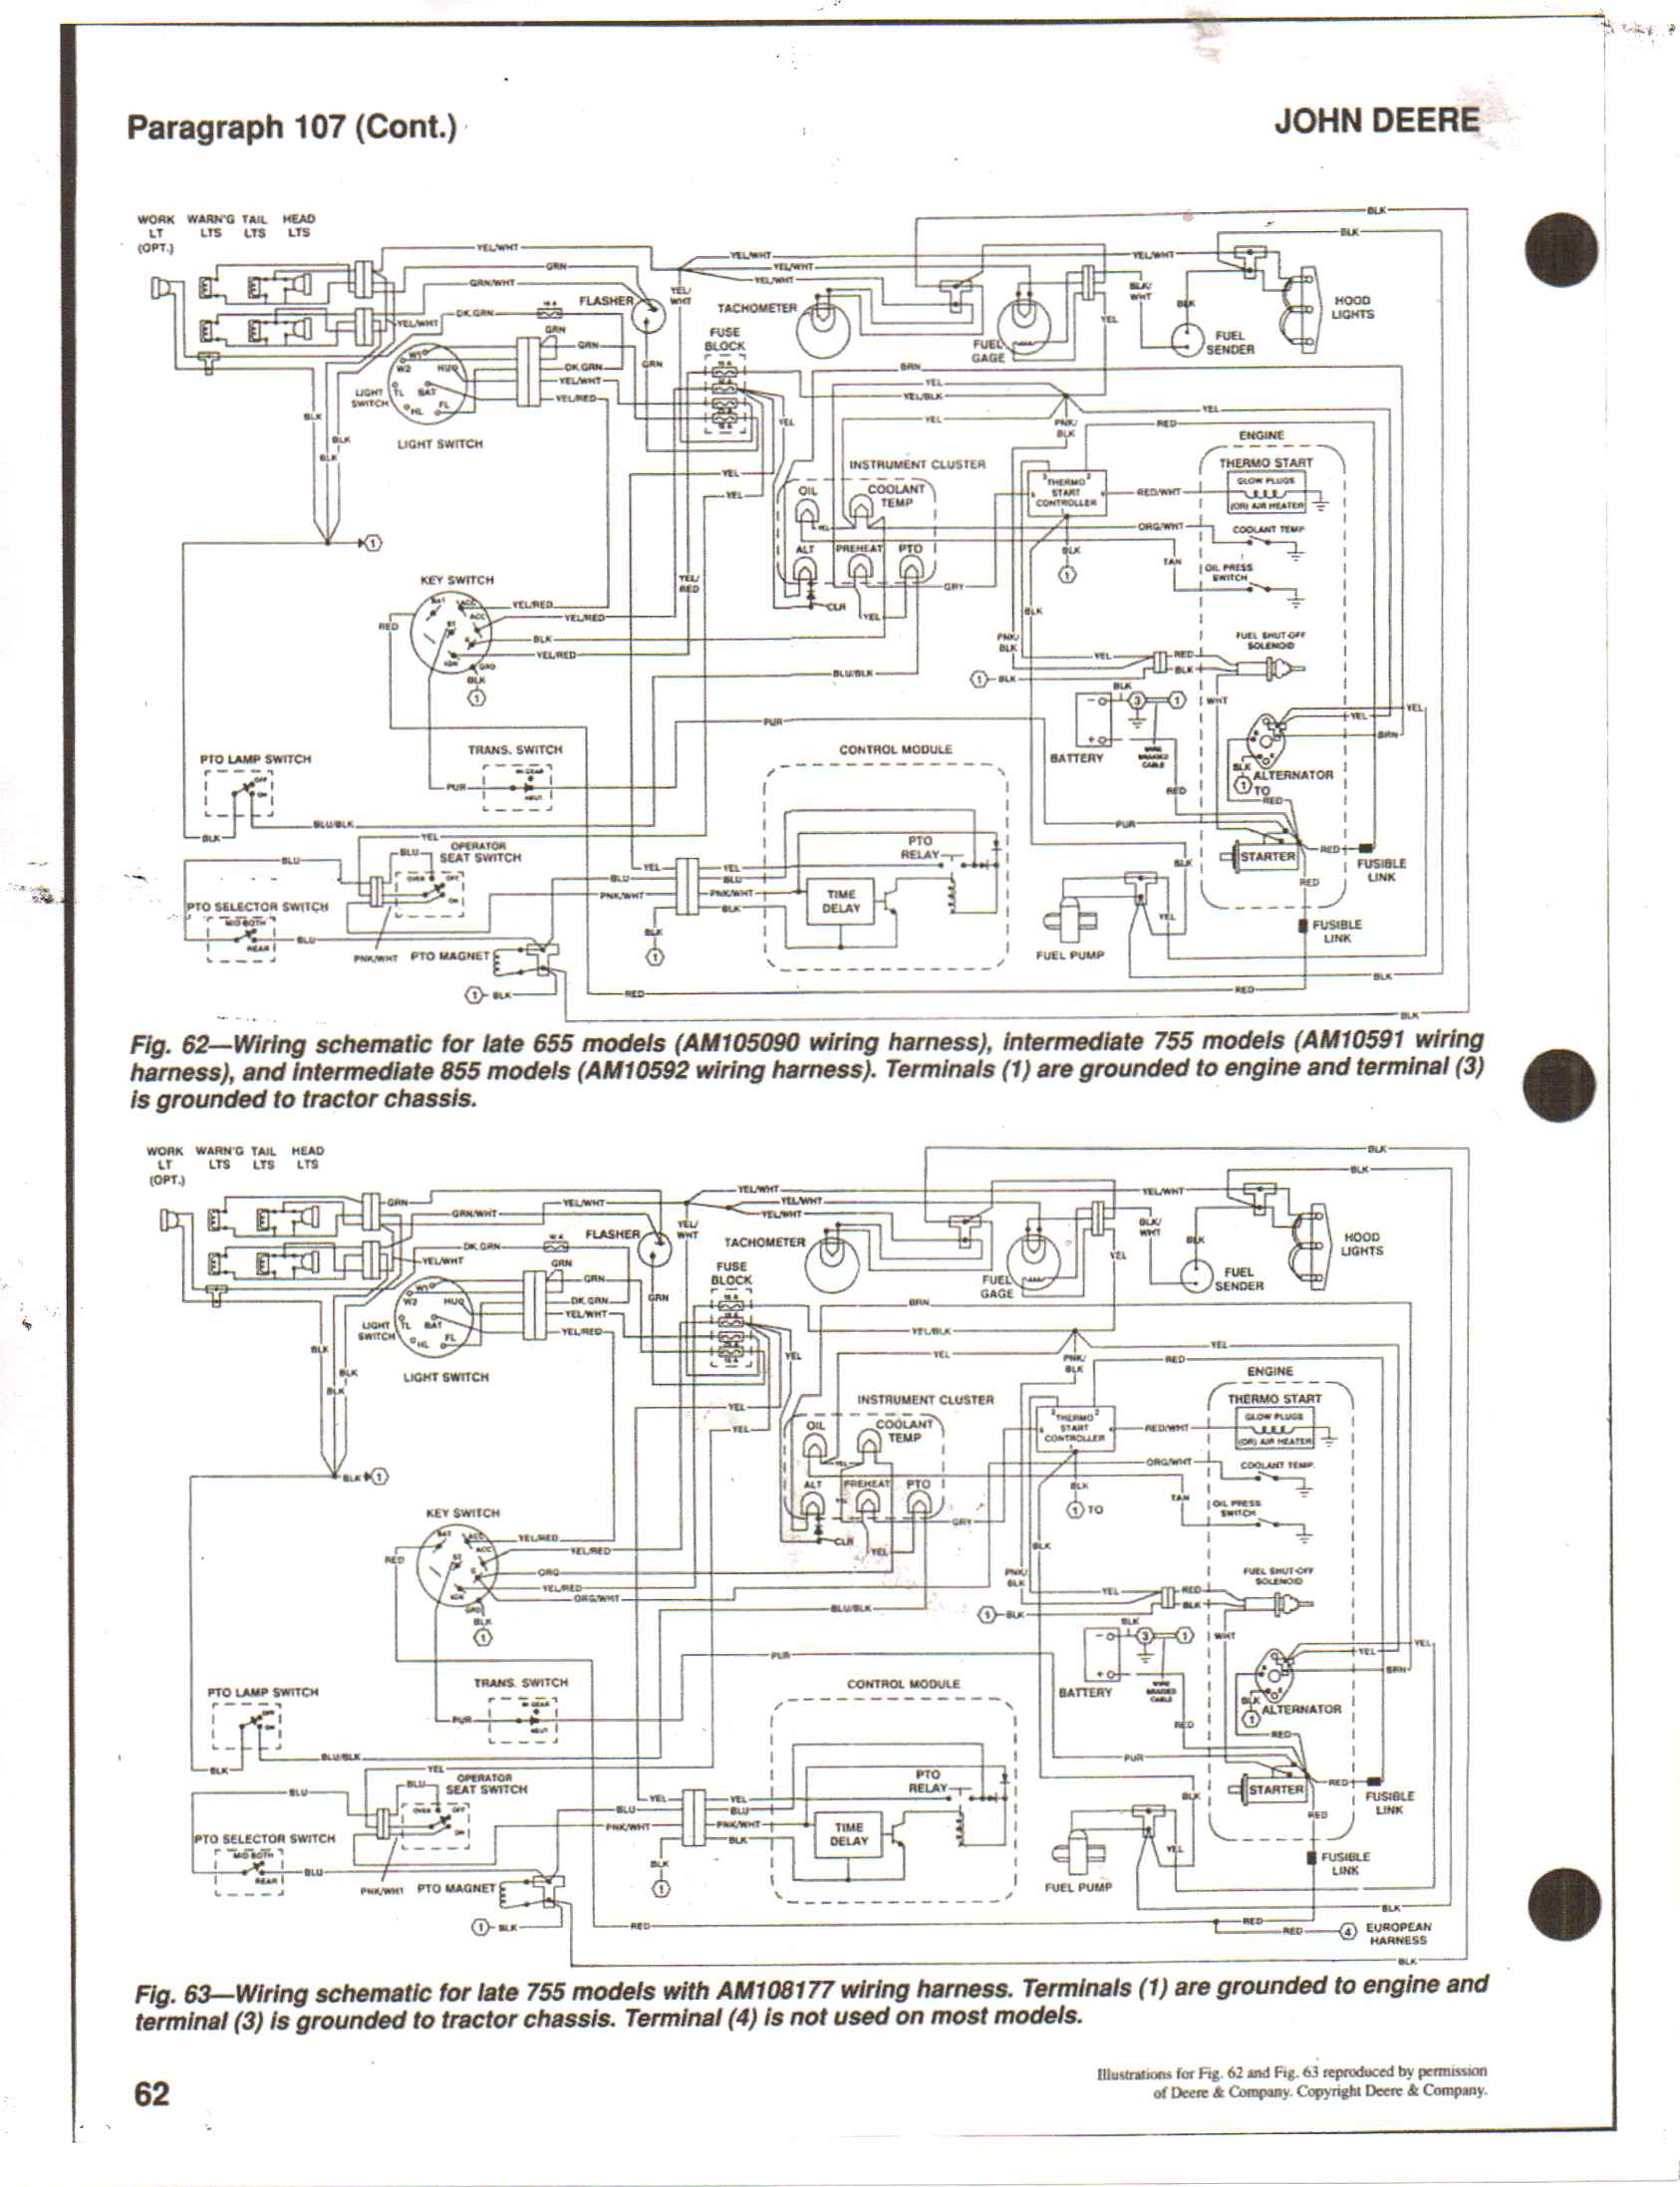 John Deere B Tractor Wiring Diagram on ford 8n tractor wiring diagram, john deere 318 wiring-diagram, john deere 400 wiring diagram, john deere b tractor clock, john deere 3010 hydraulic diagram, john deere b tractor wheels, john deere 620 wiring diagram, john deere ignition switch diagram, john deere a wiring diagram, john deere alternator wiring diagram, farmall tractor wiring diagram, john deere 3010 parts diagram, husqvarna riding mower wiring diagram, ford 600 tractor wiring diagram, craftsman riding lawn mower wiring diagram, john deere b tractor seats, john deere gator ignition wiring diagram, john deere 4020 parts diagram, ford tractor alternator wiring diagram, john deere b tractor manual,